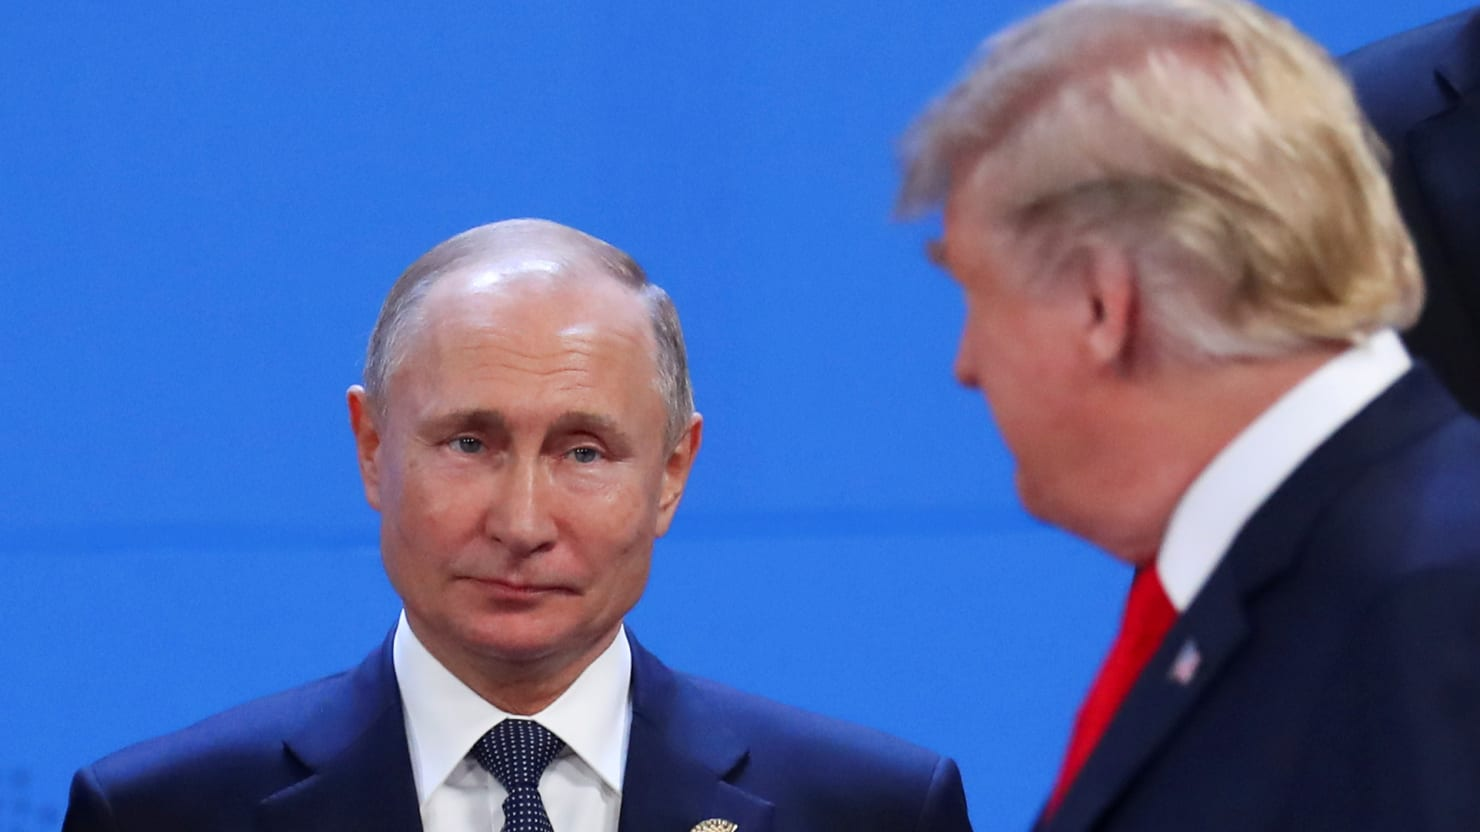 Russia Gloats Over Mueller Report: 'Not a Single Piece of Evidence' for Inteference